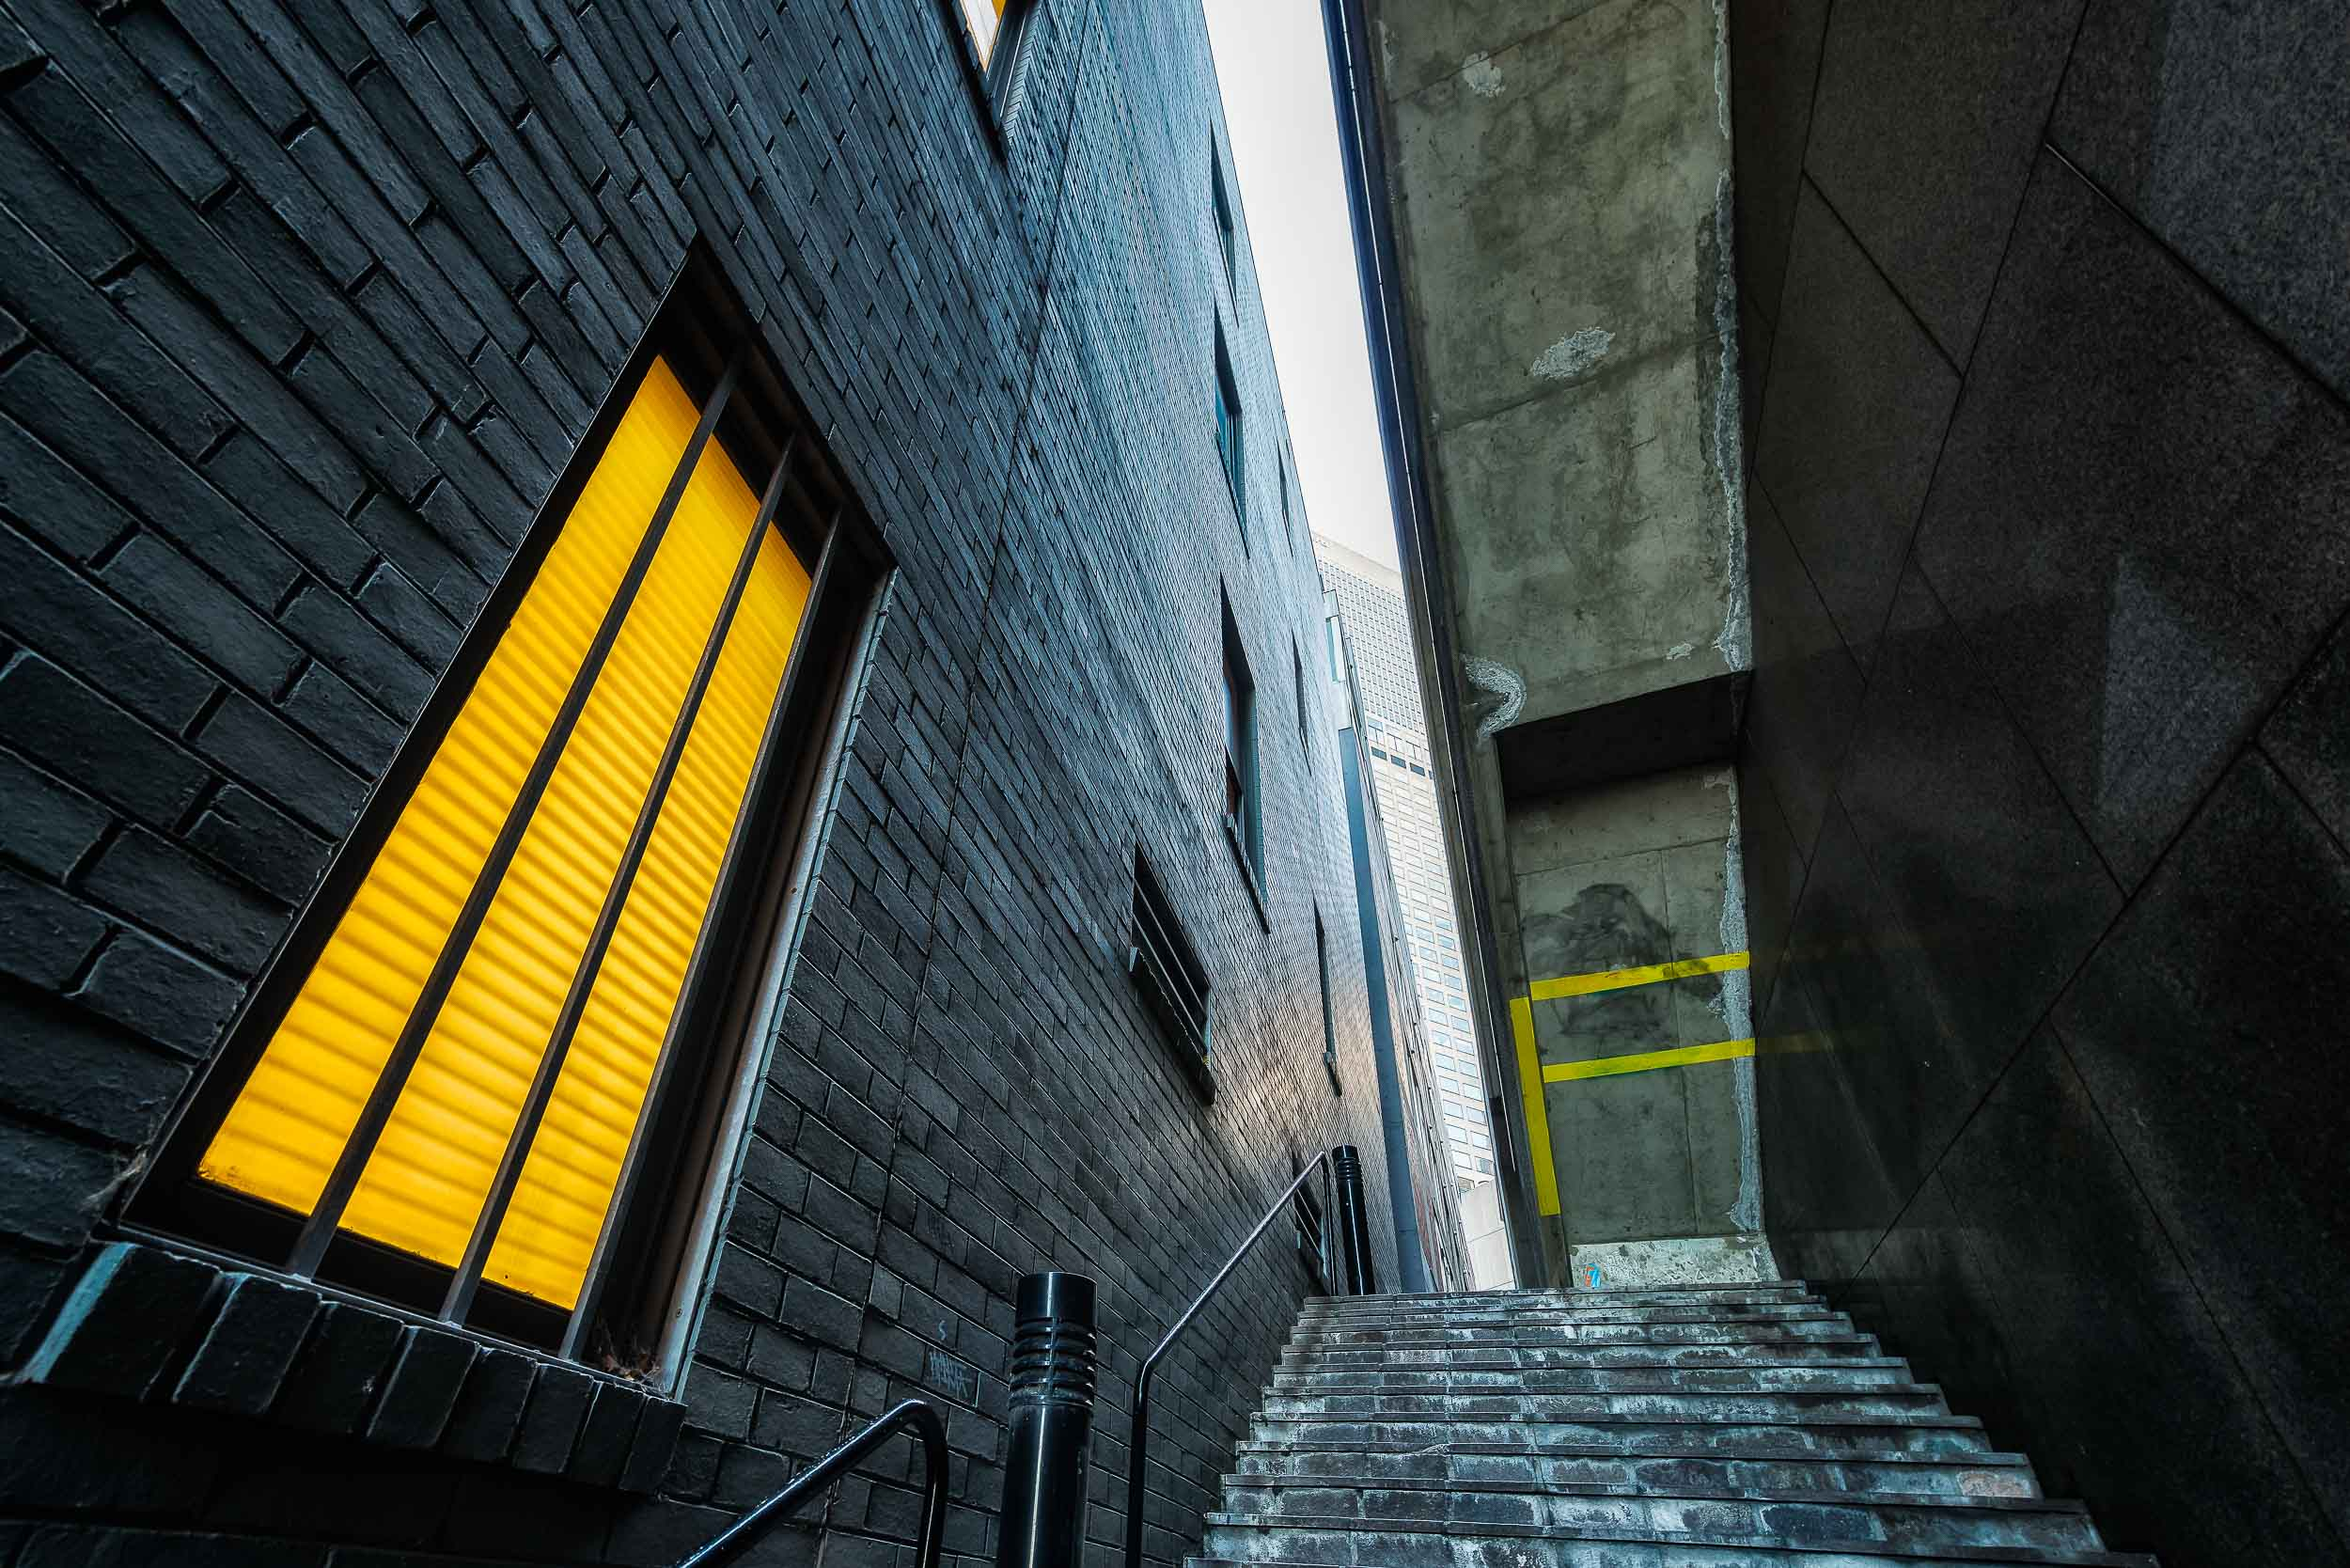 A    steep staircase    leads the visitor through a    narrow alleyway    in the    City of Melbourne, Australia   .